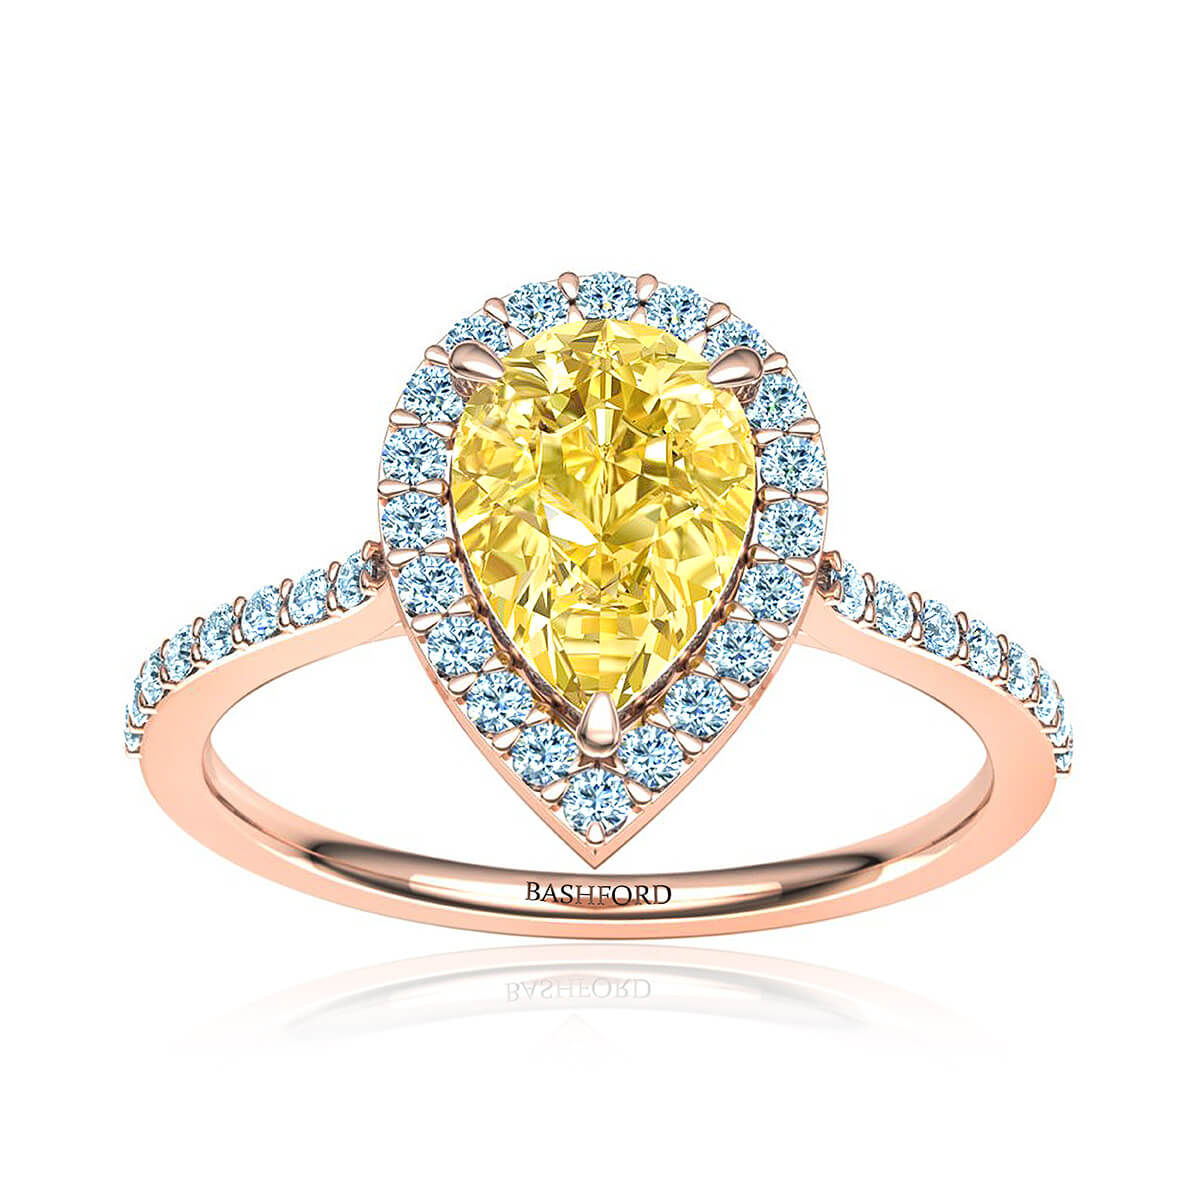 Queen Victoria Diamond Ring (with 1 Carat Pear Yellow Diamond)